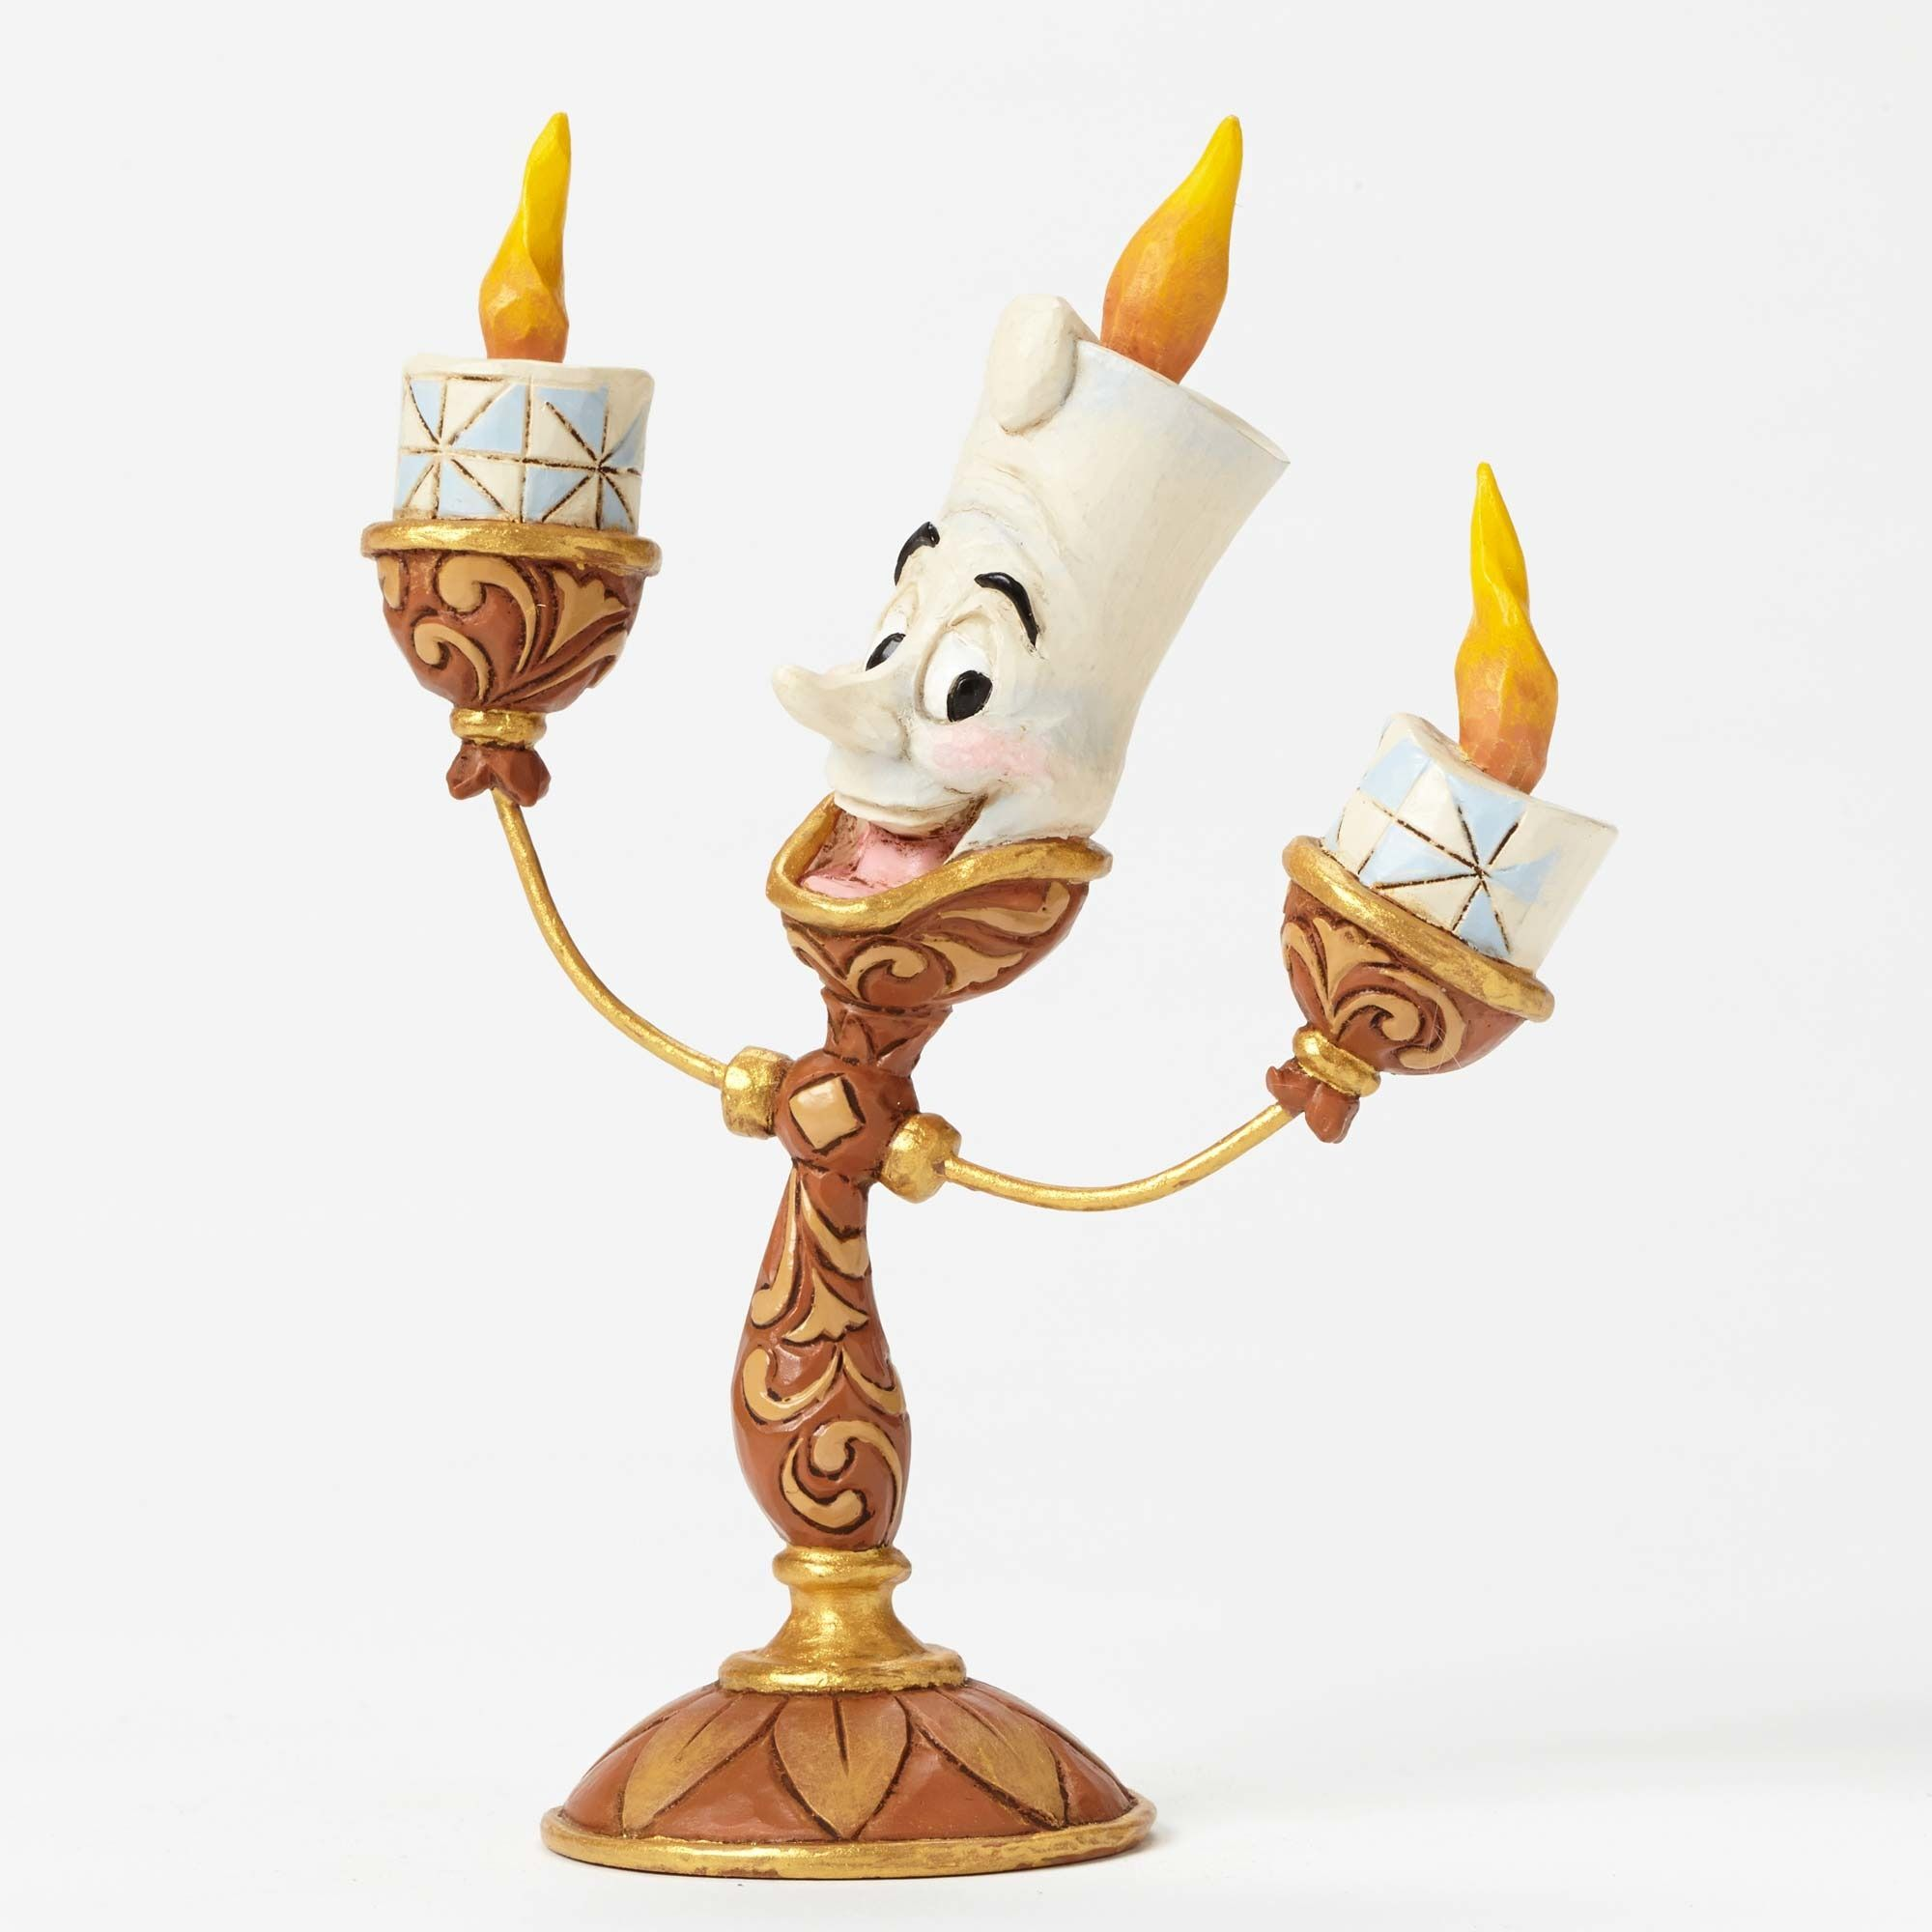 Disney ornament sets - Lumiere Is Here To Light The Way Oh La La Lumiere